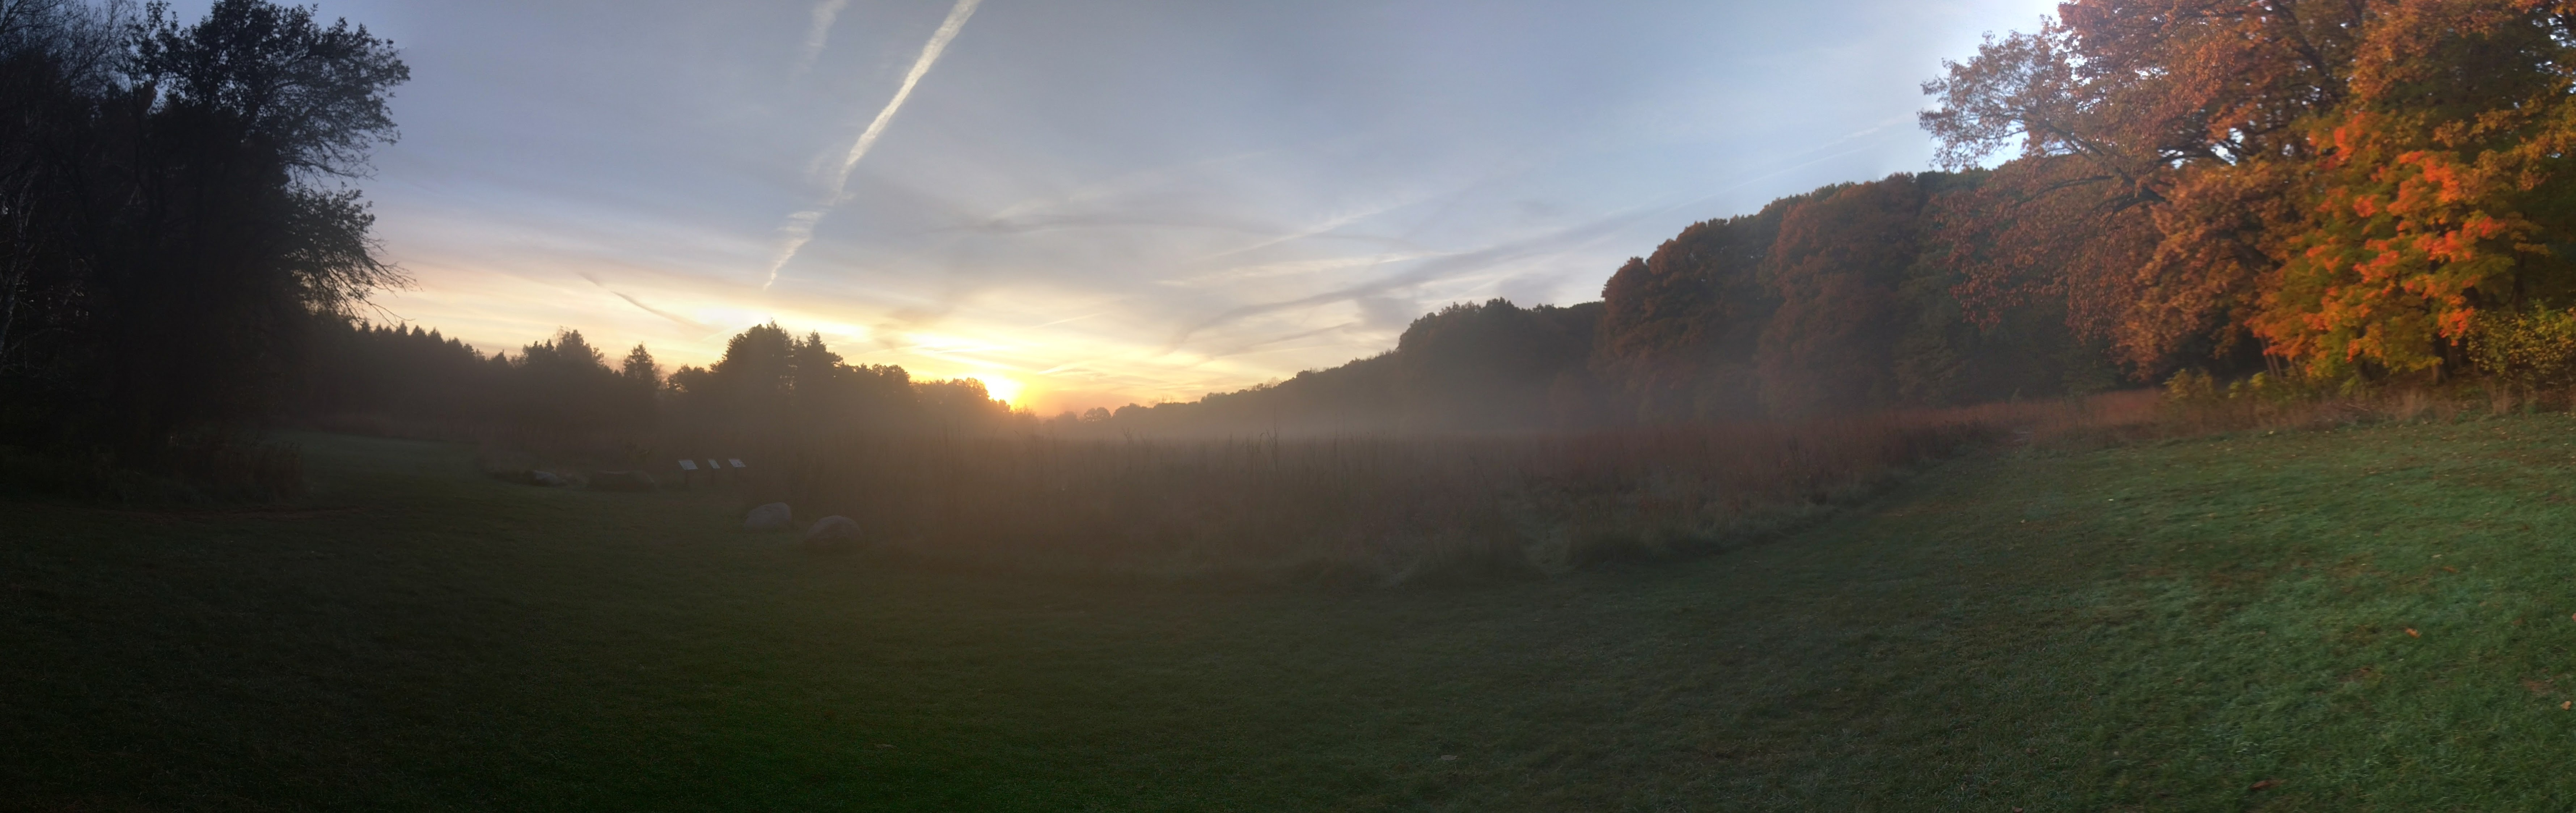 Sun-up at the Arb